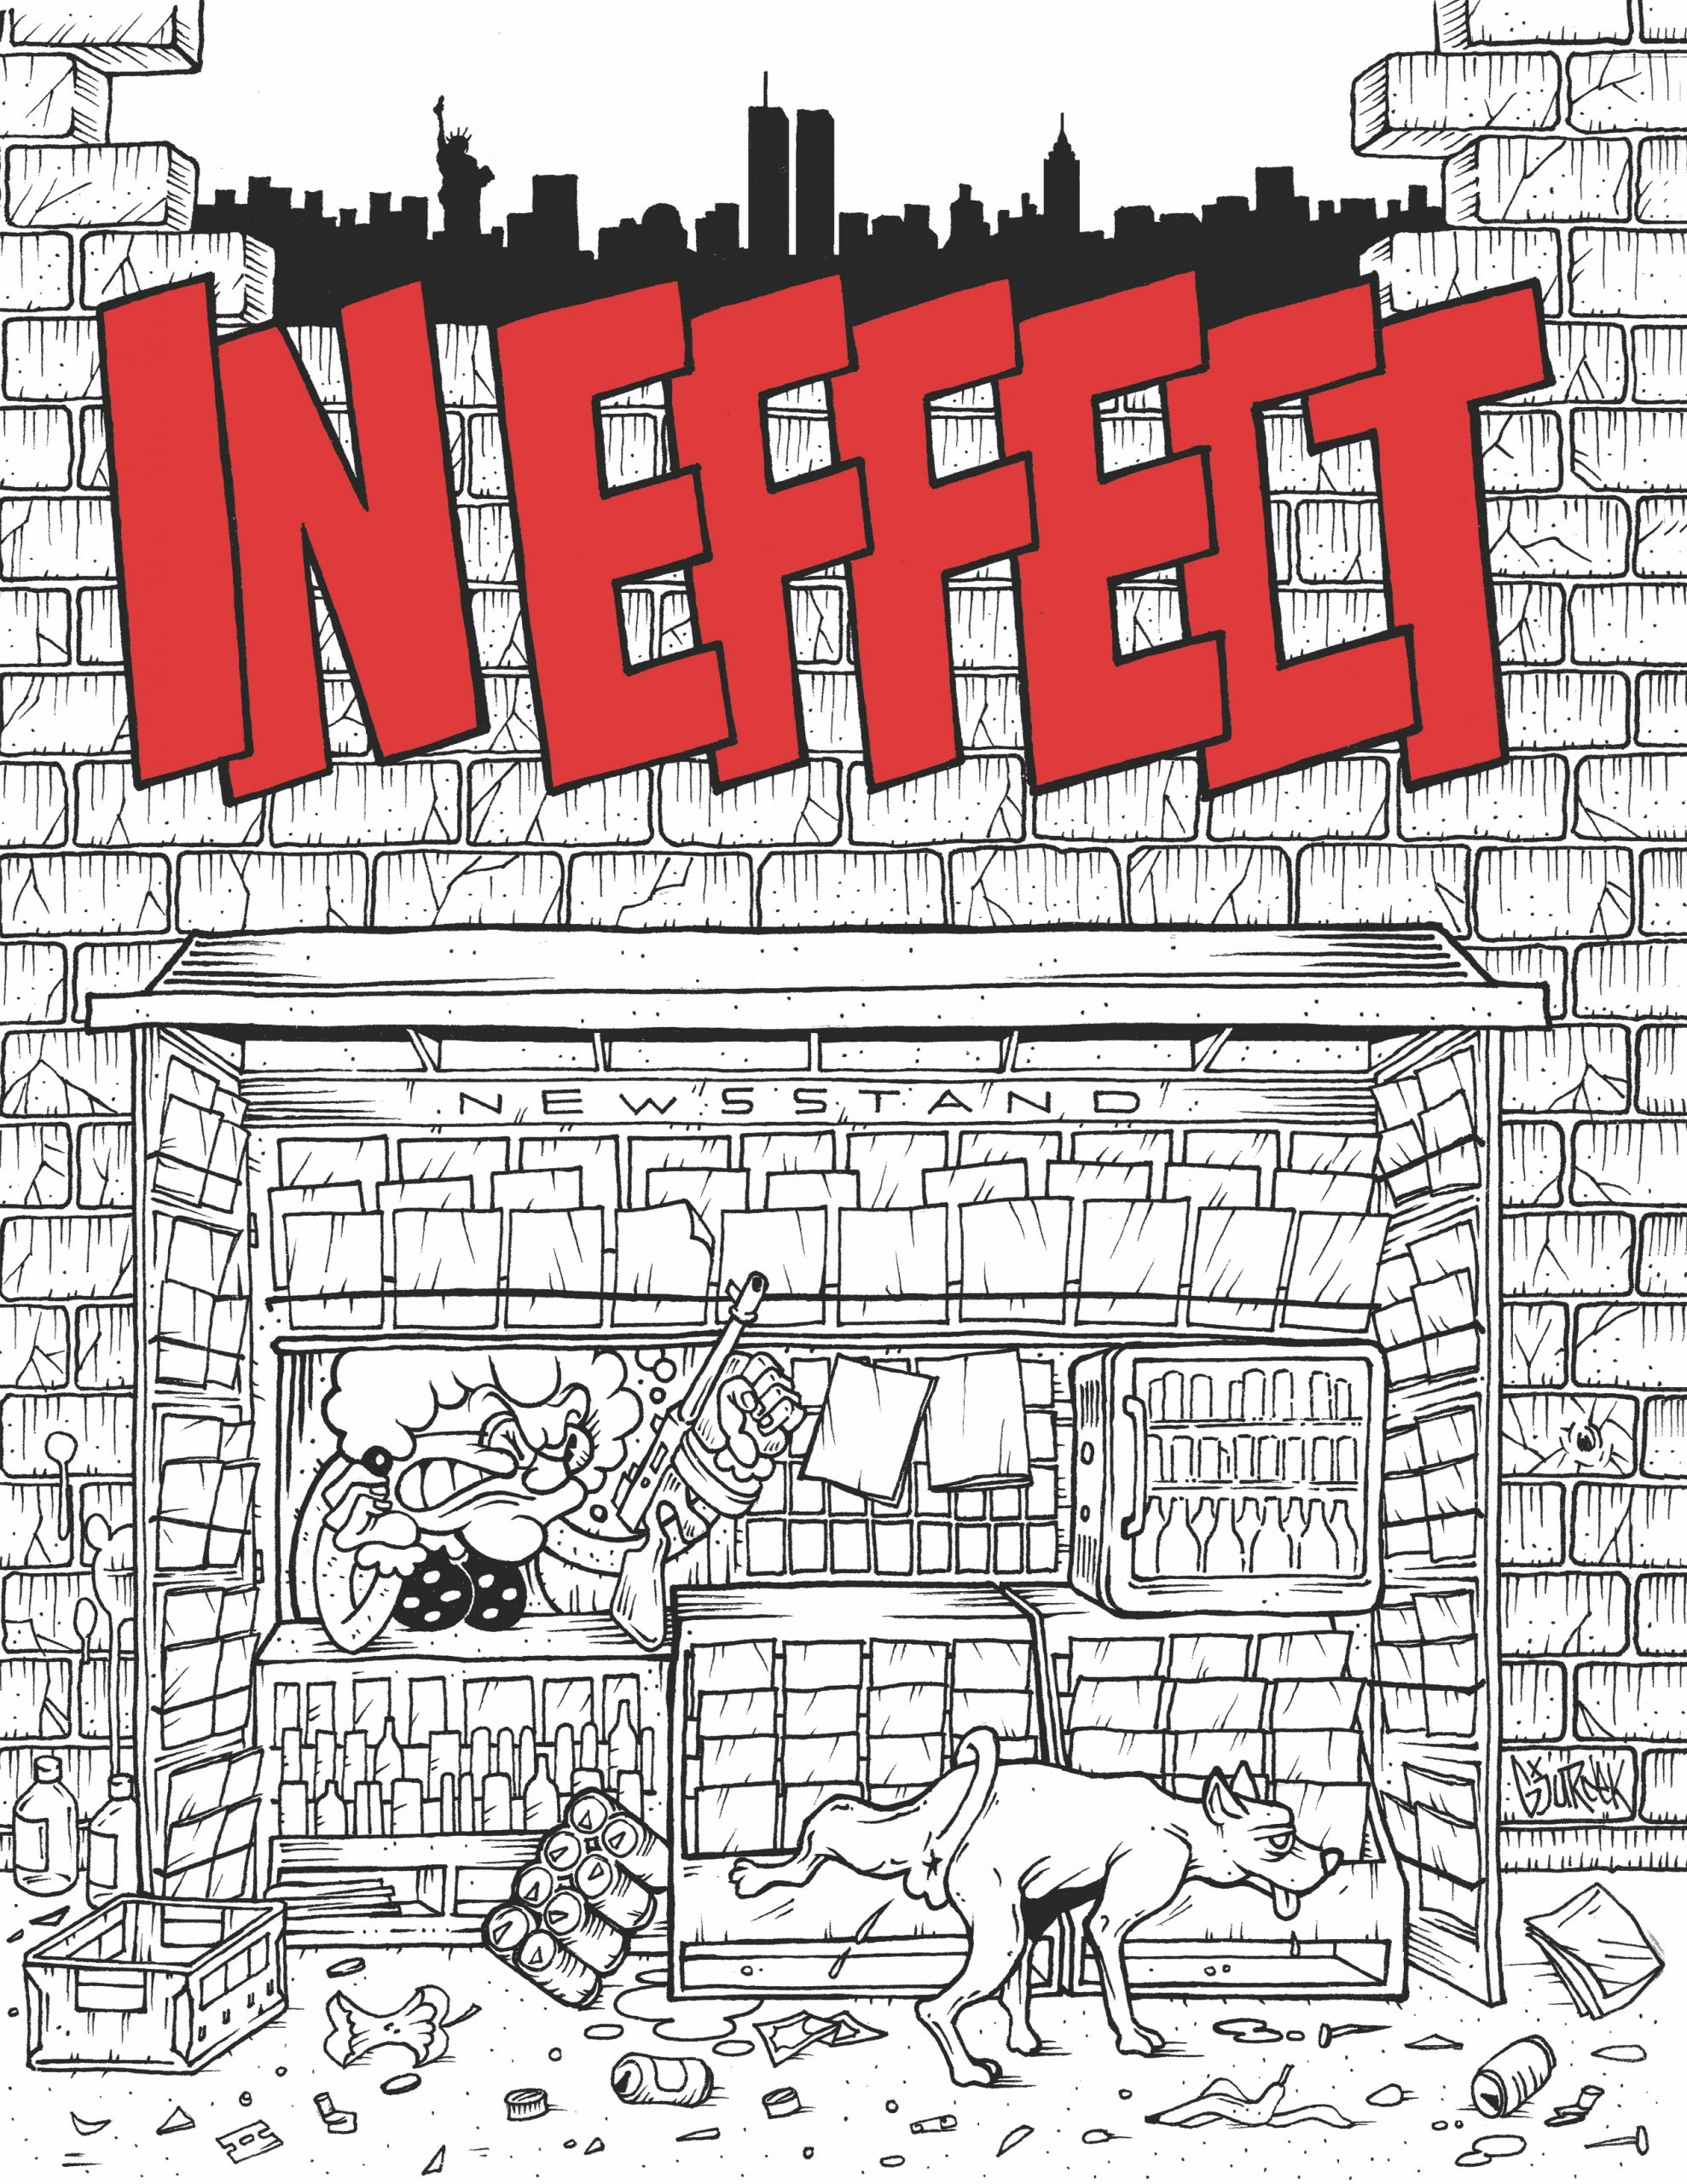 image for Episode 44 Chris Wynne. From Photocopies to Hardcover Book, the Story of In Effect Zine.